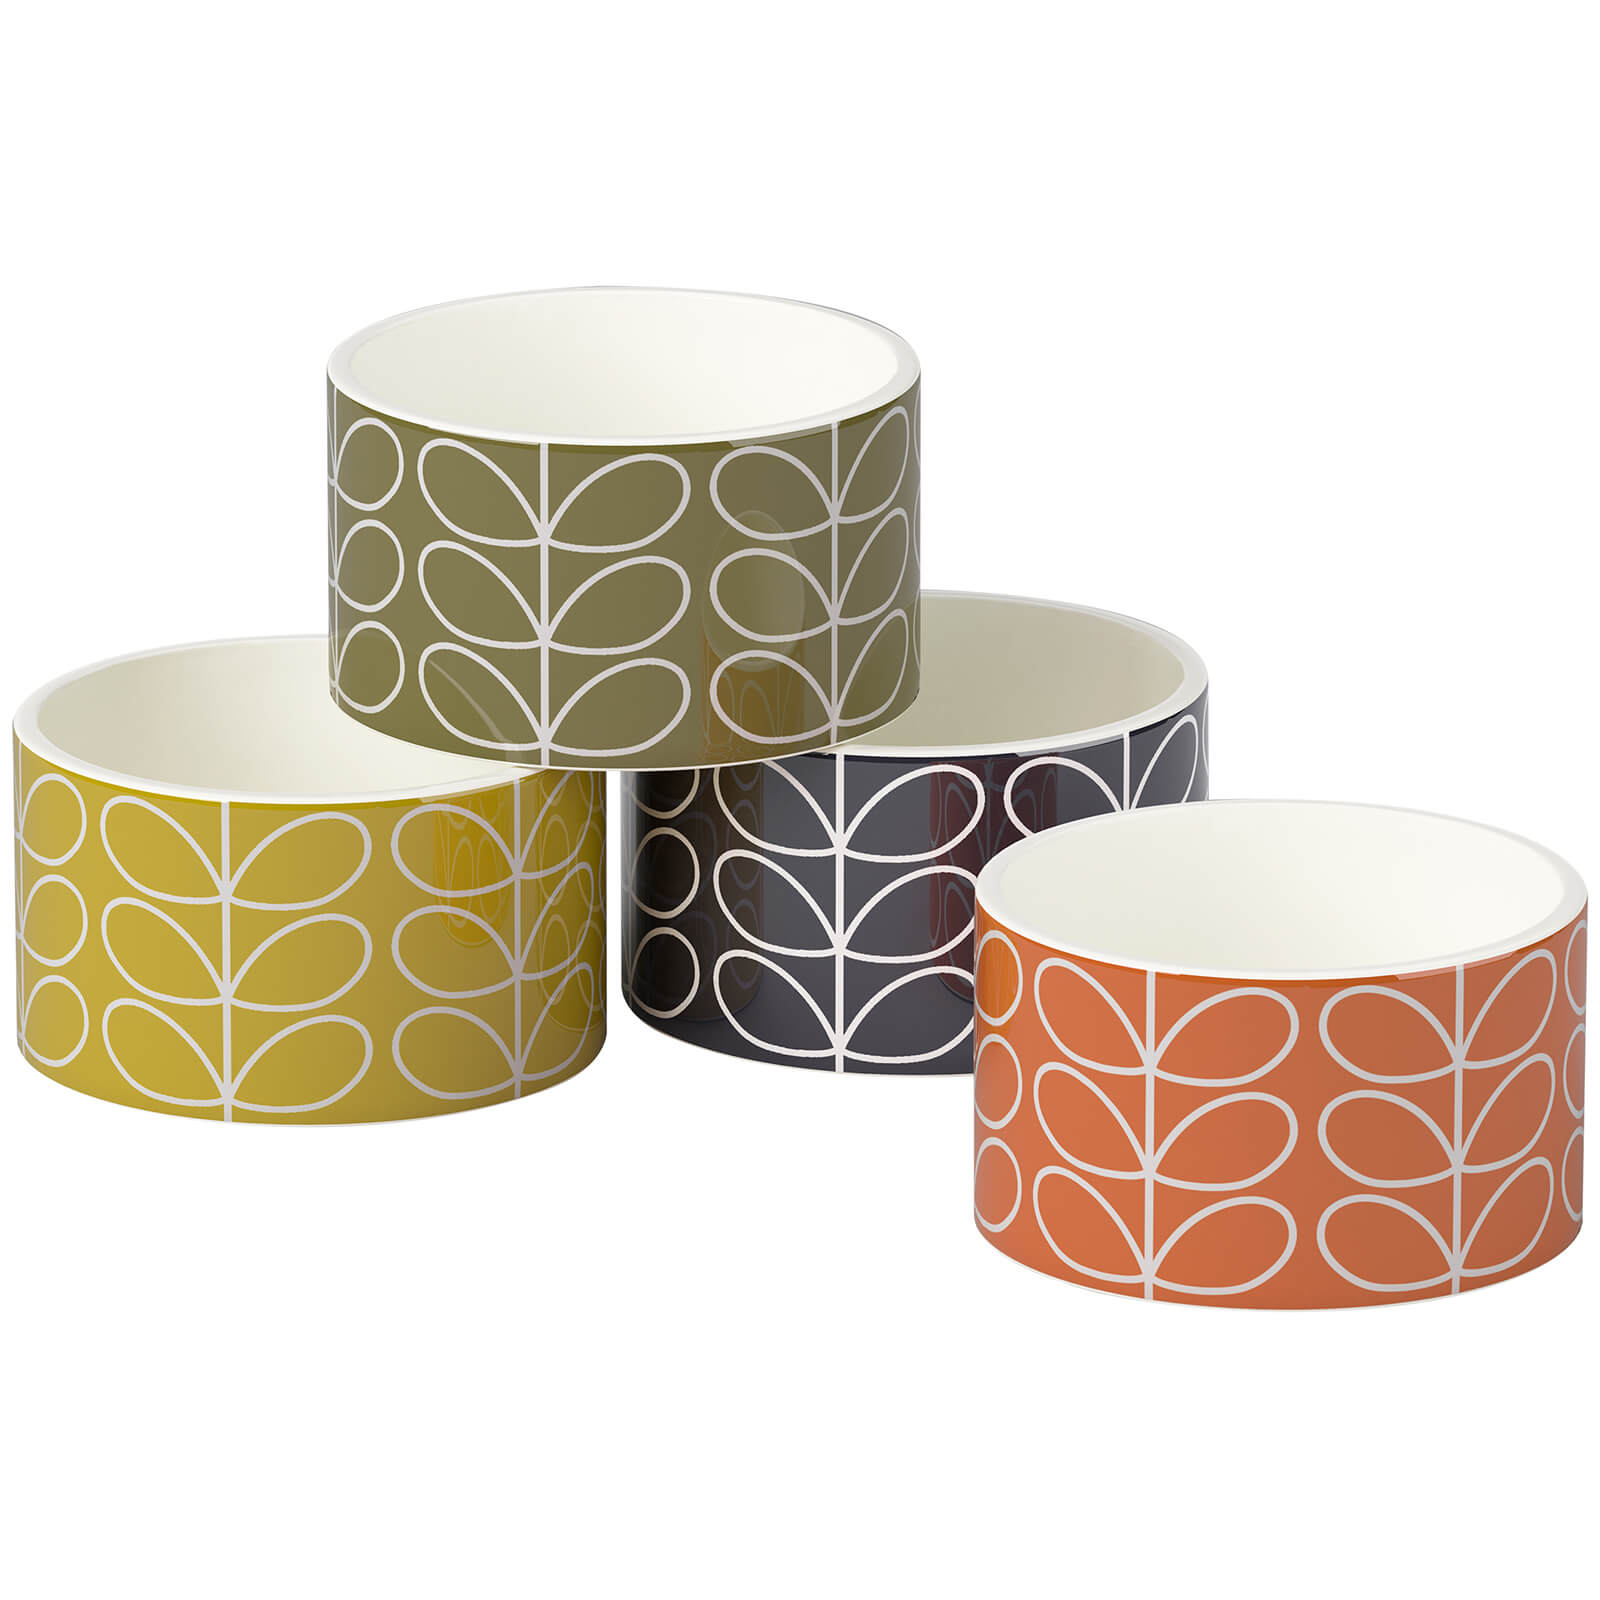 Orla Kiely Linear Stem Ramekins - Multi (Set of 4)